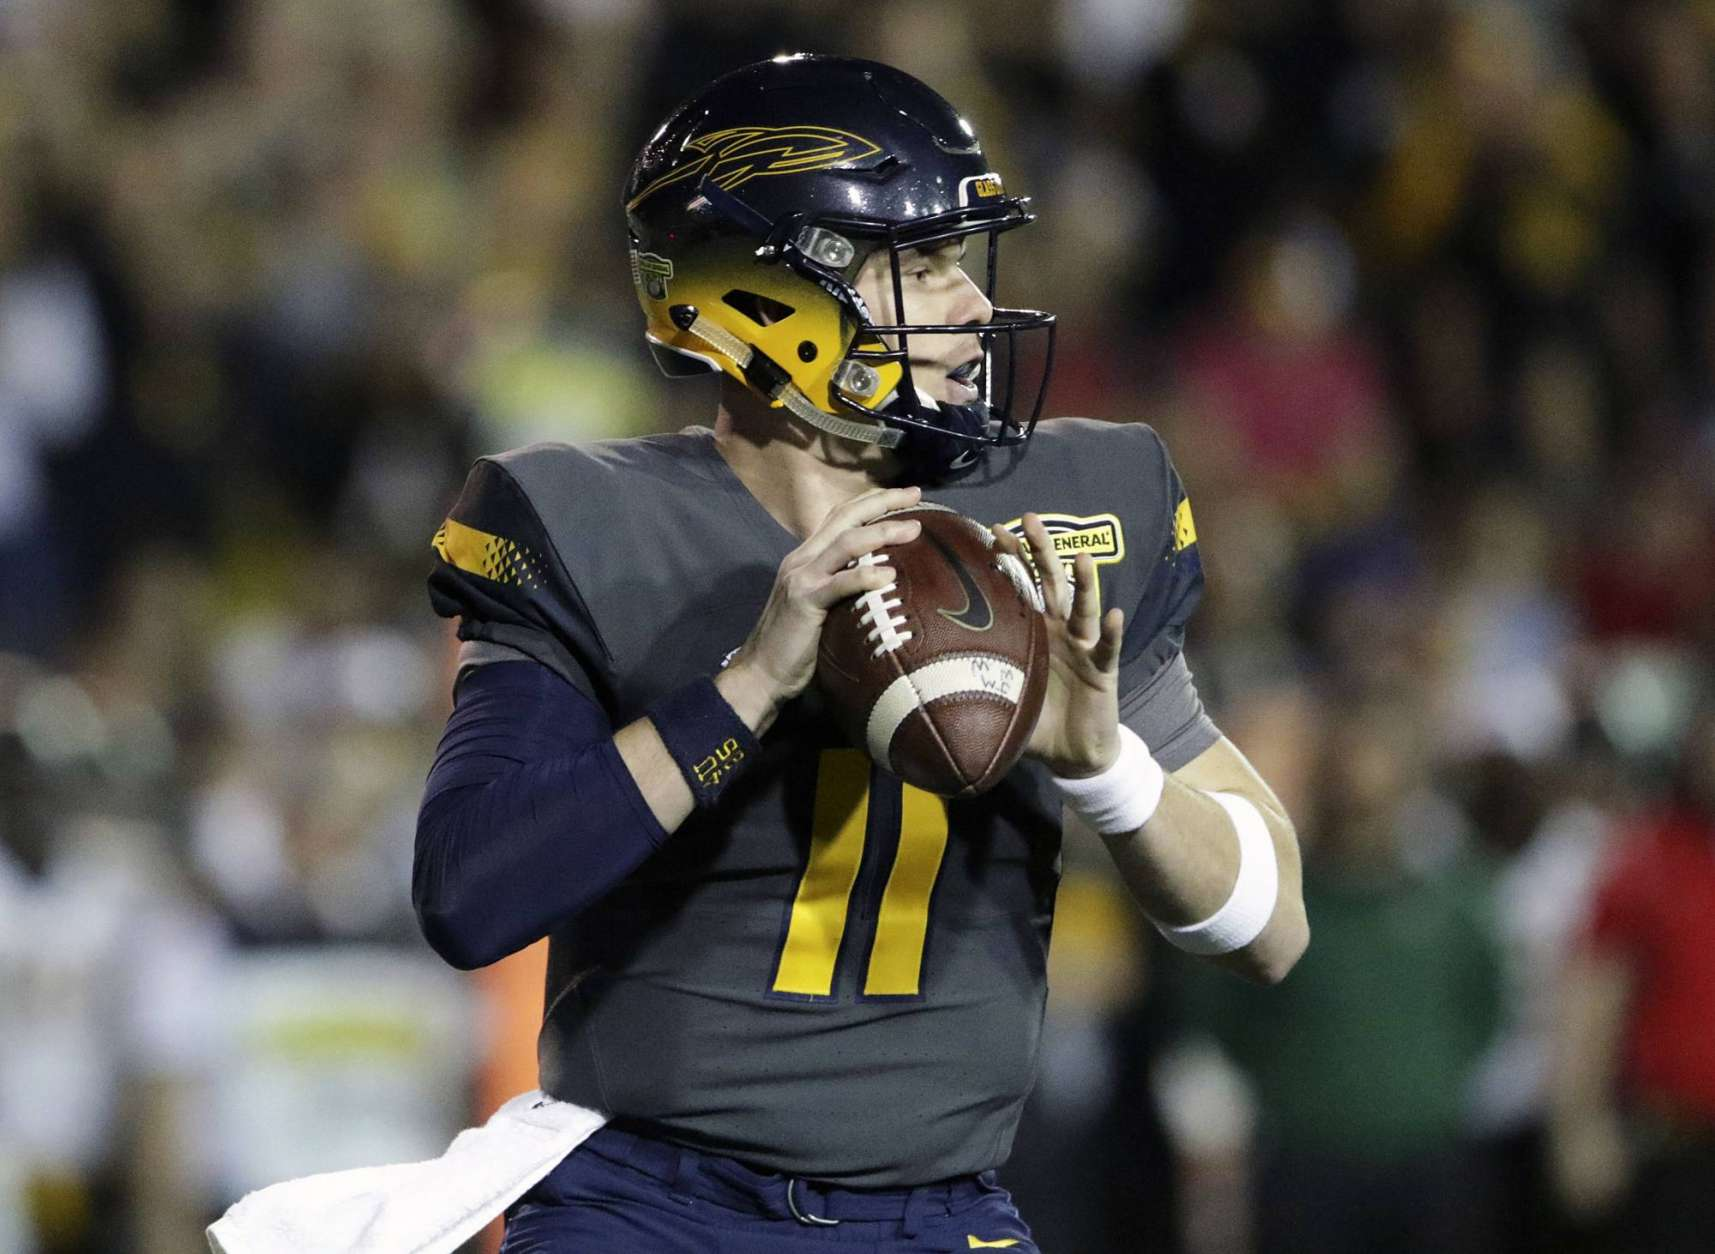 Toledo quarterback Logan Woodside looks to pass against Appalachian State in the first half during the Dollar General Bowl NCAA college football game Saturday, Dec. 23, 2017, in Mobile, Ala. (AP Photo/Dan Anderson)